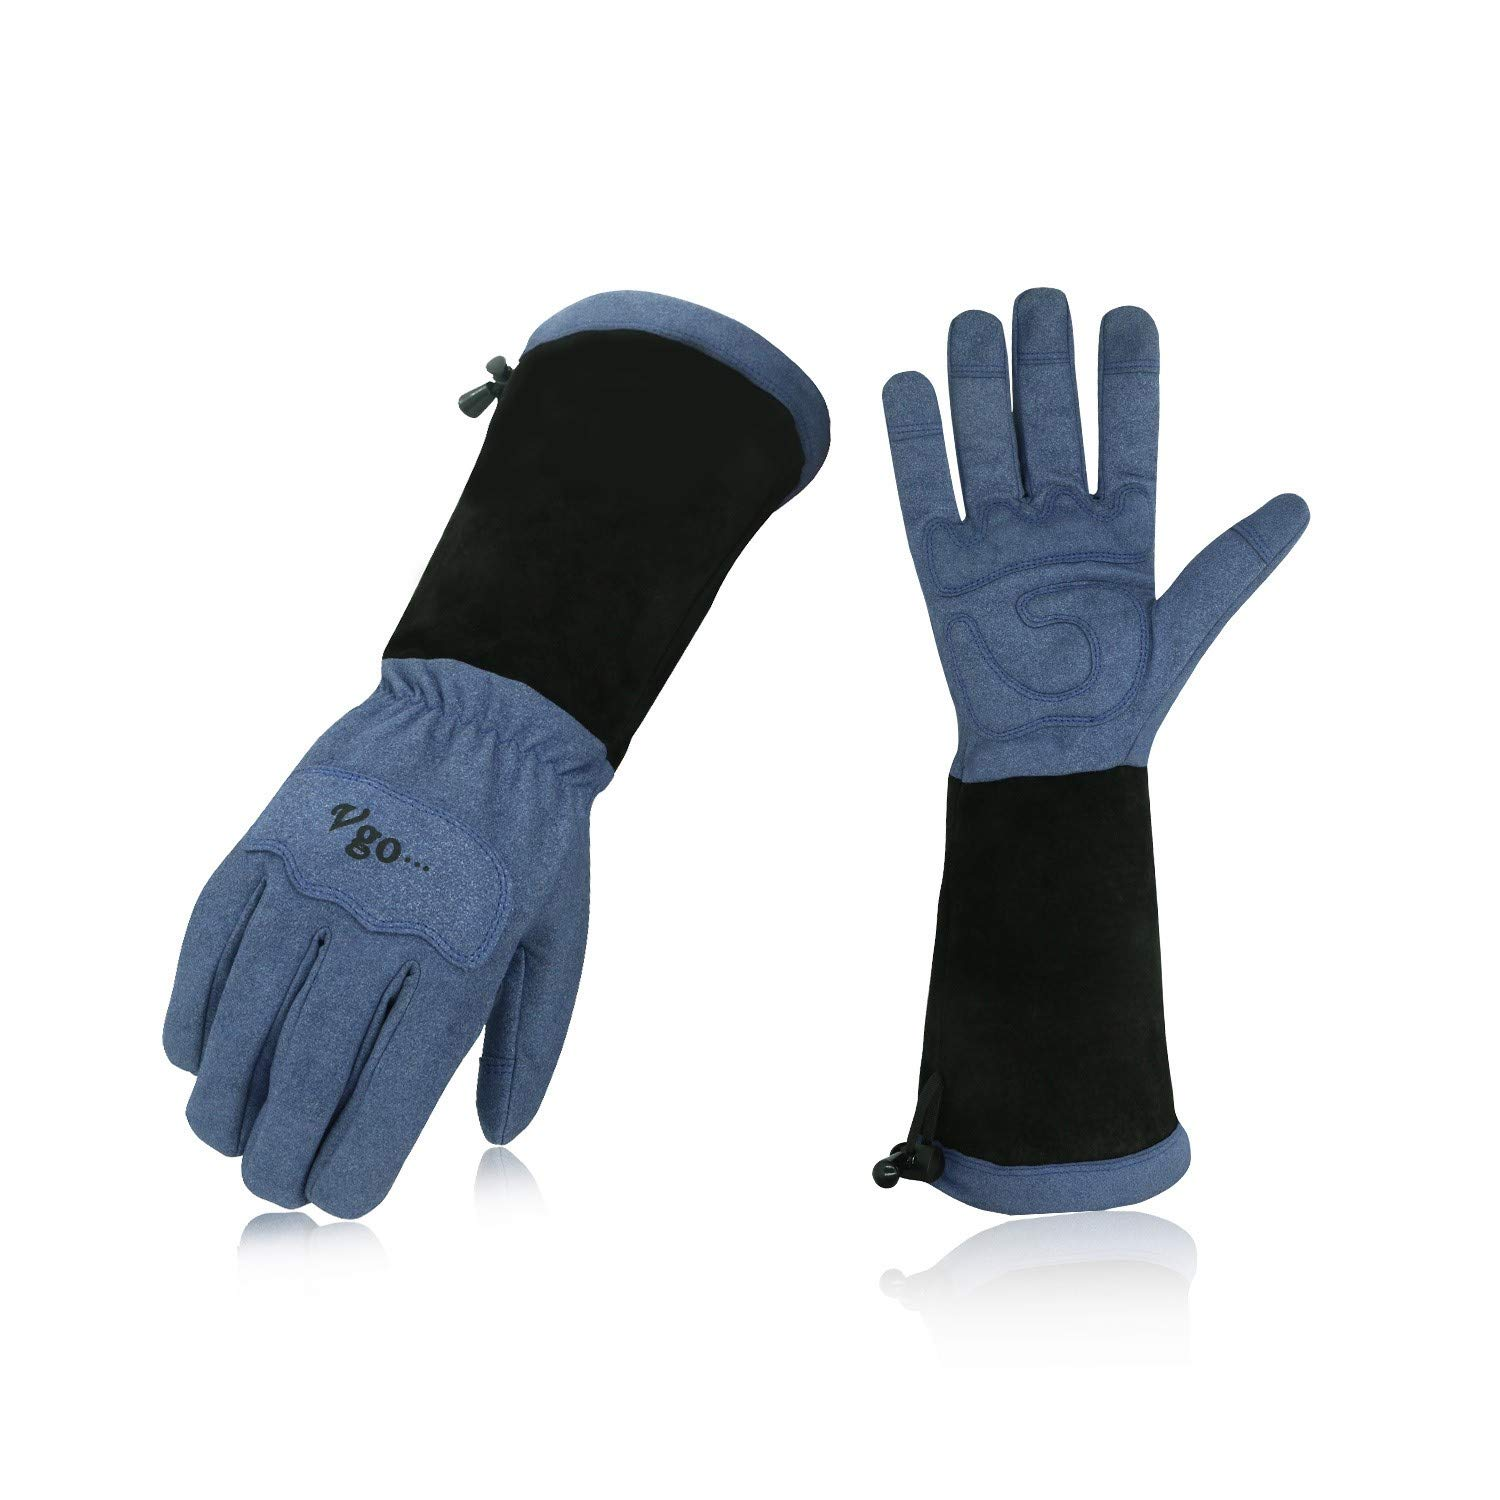 Vgo Men's Synthetic Leather Palm with Long Pig Split Leather Cuff Rose Garden Gloves (1Pair,Size XL,Blue,SL6592M)